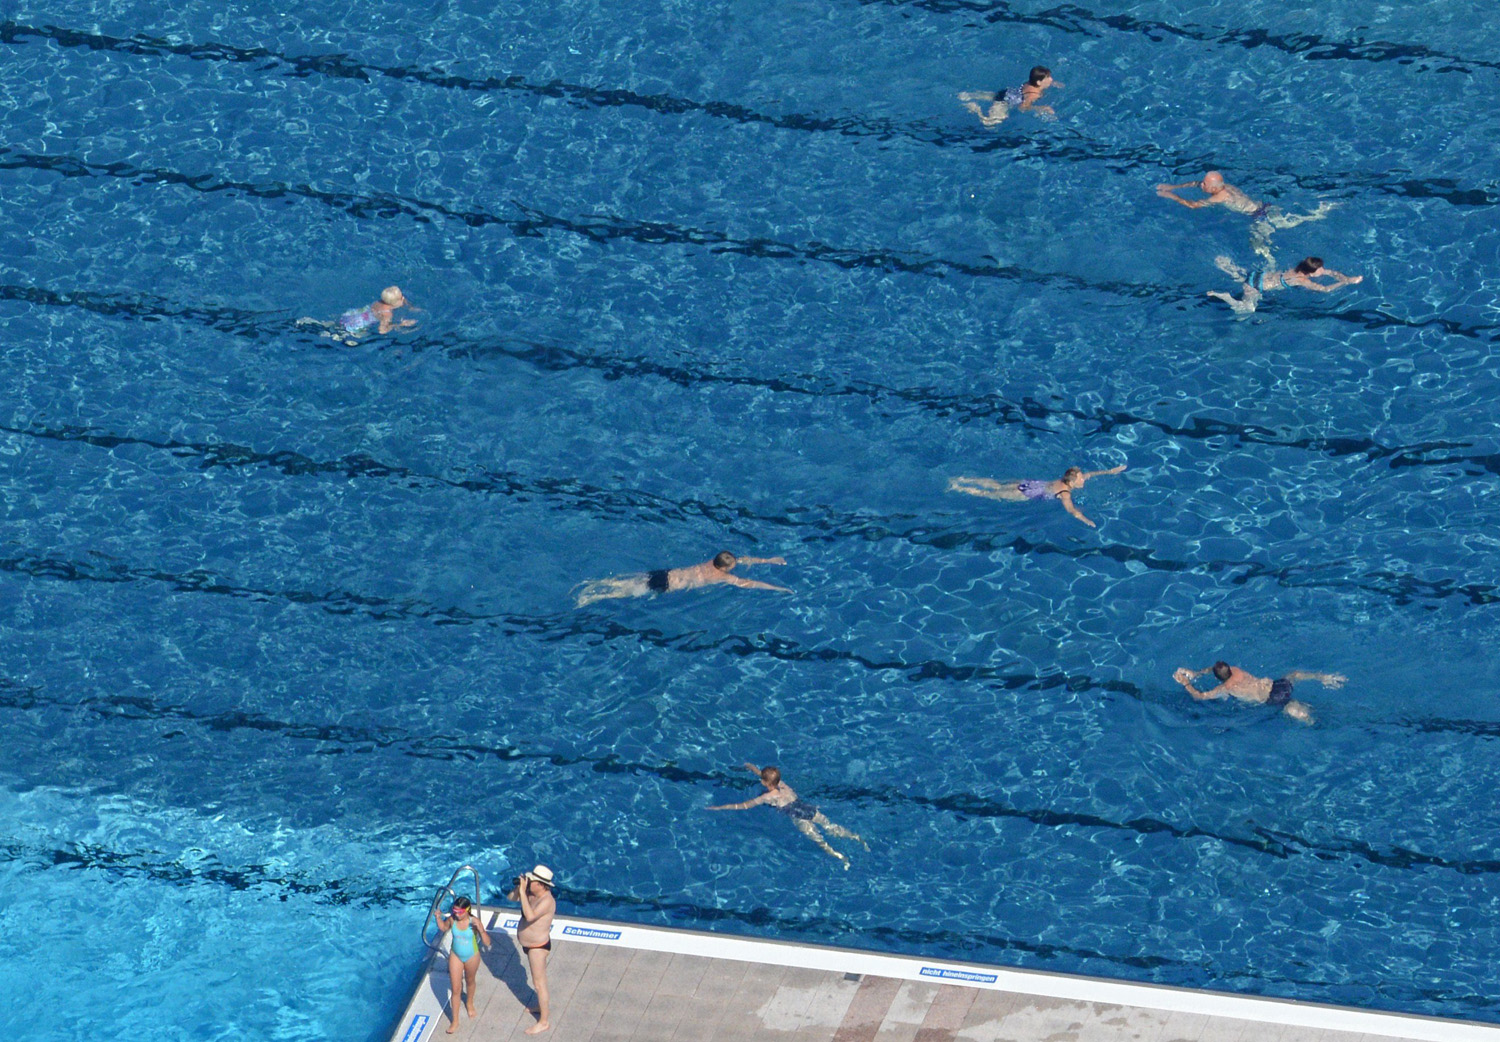 People swim at the Massenei open air public swimming pool in Grossroehrsdorf, Germany on July 19, 2014.